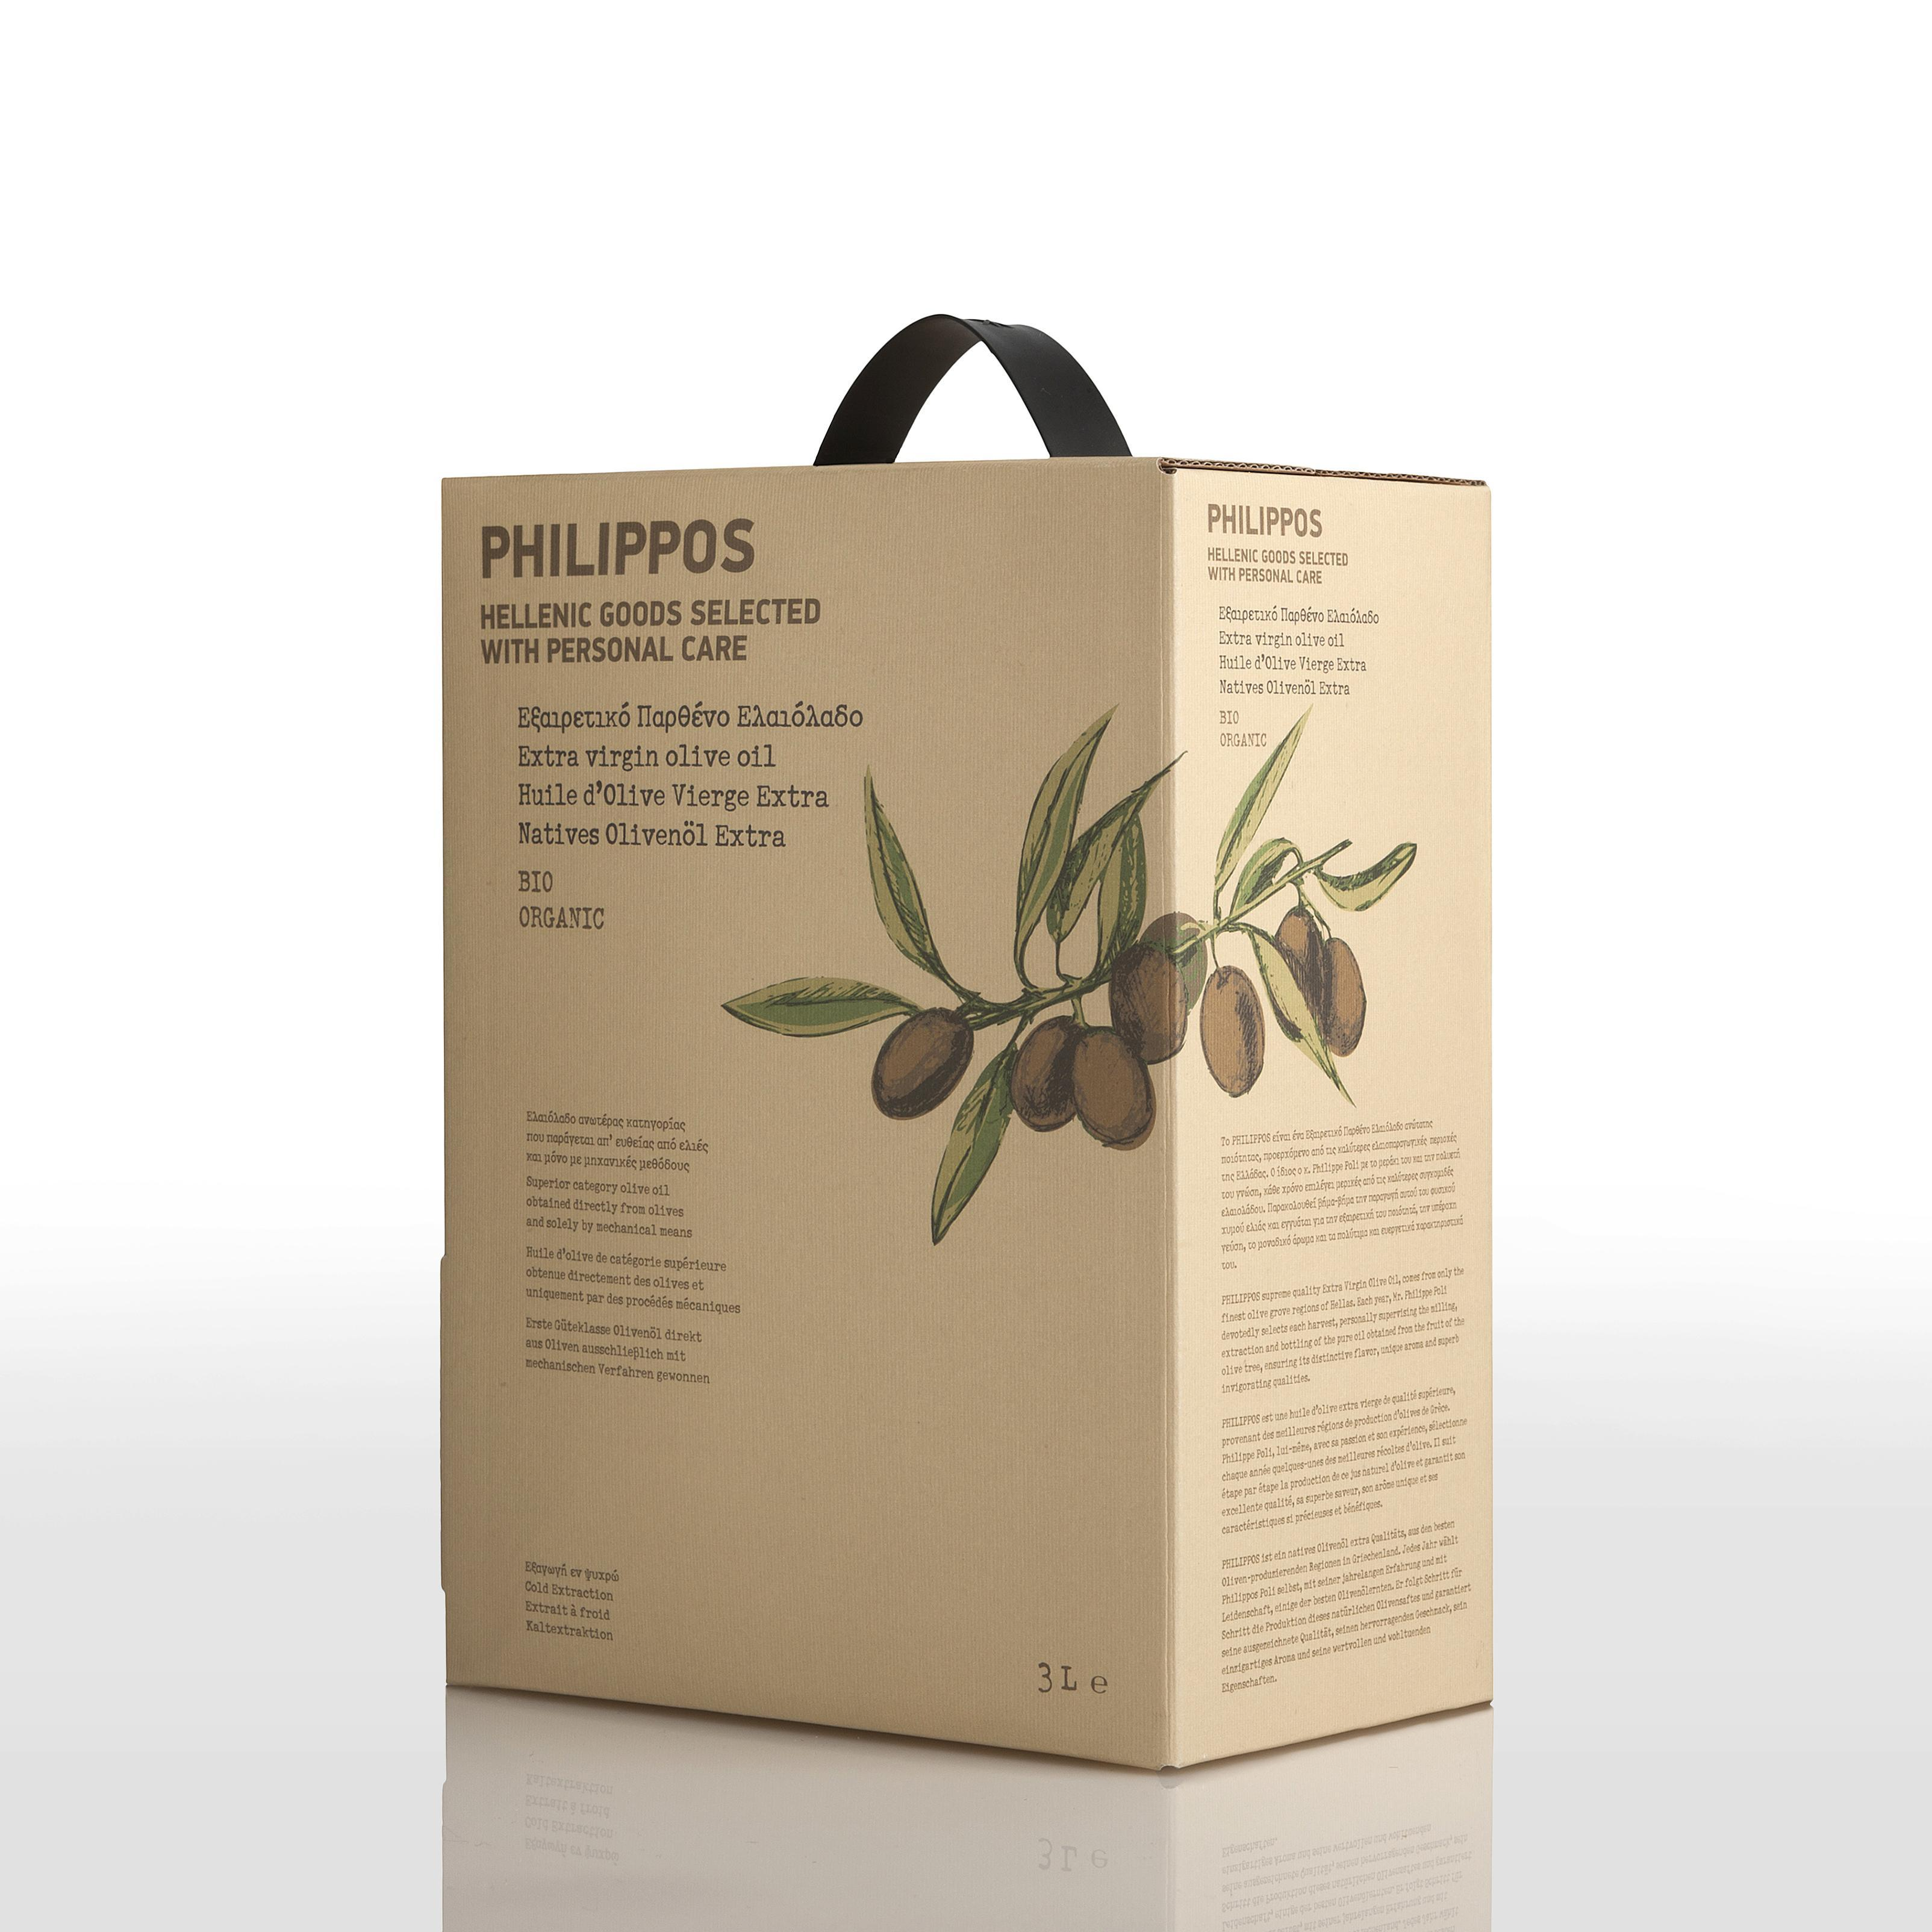 PHILIPPOS BIO Extra Virgin Olive Oil 3L bag in box